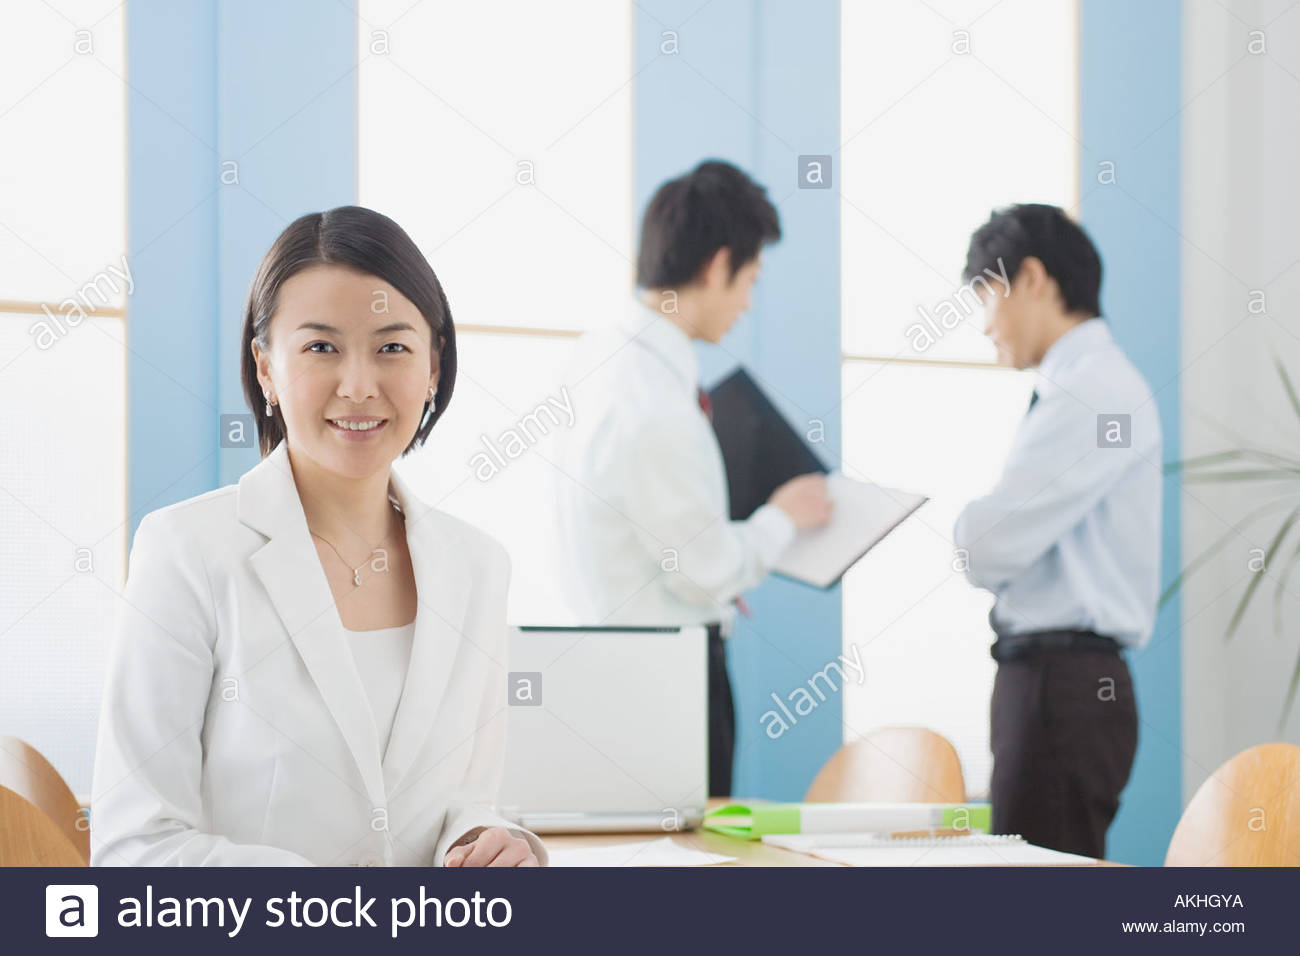 Japanese businesspeople in office - Stock Image